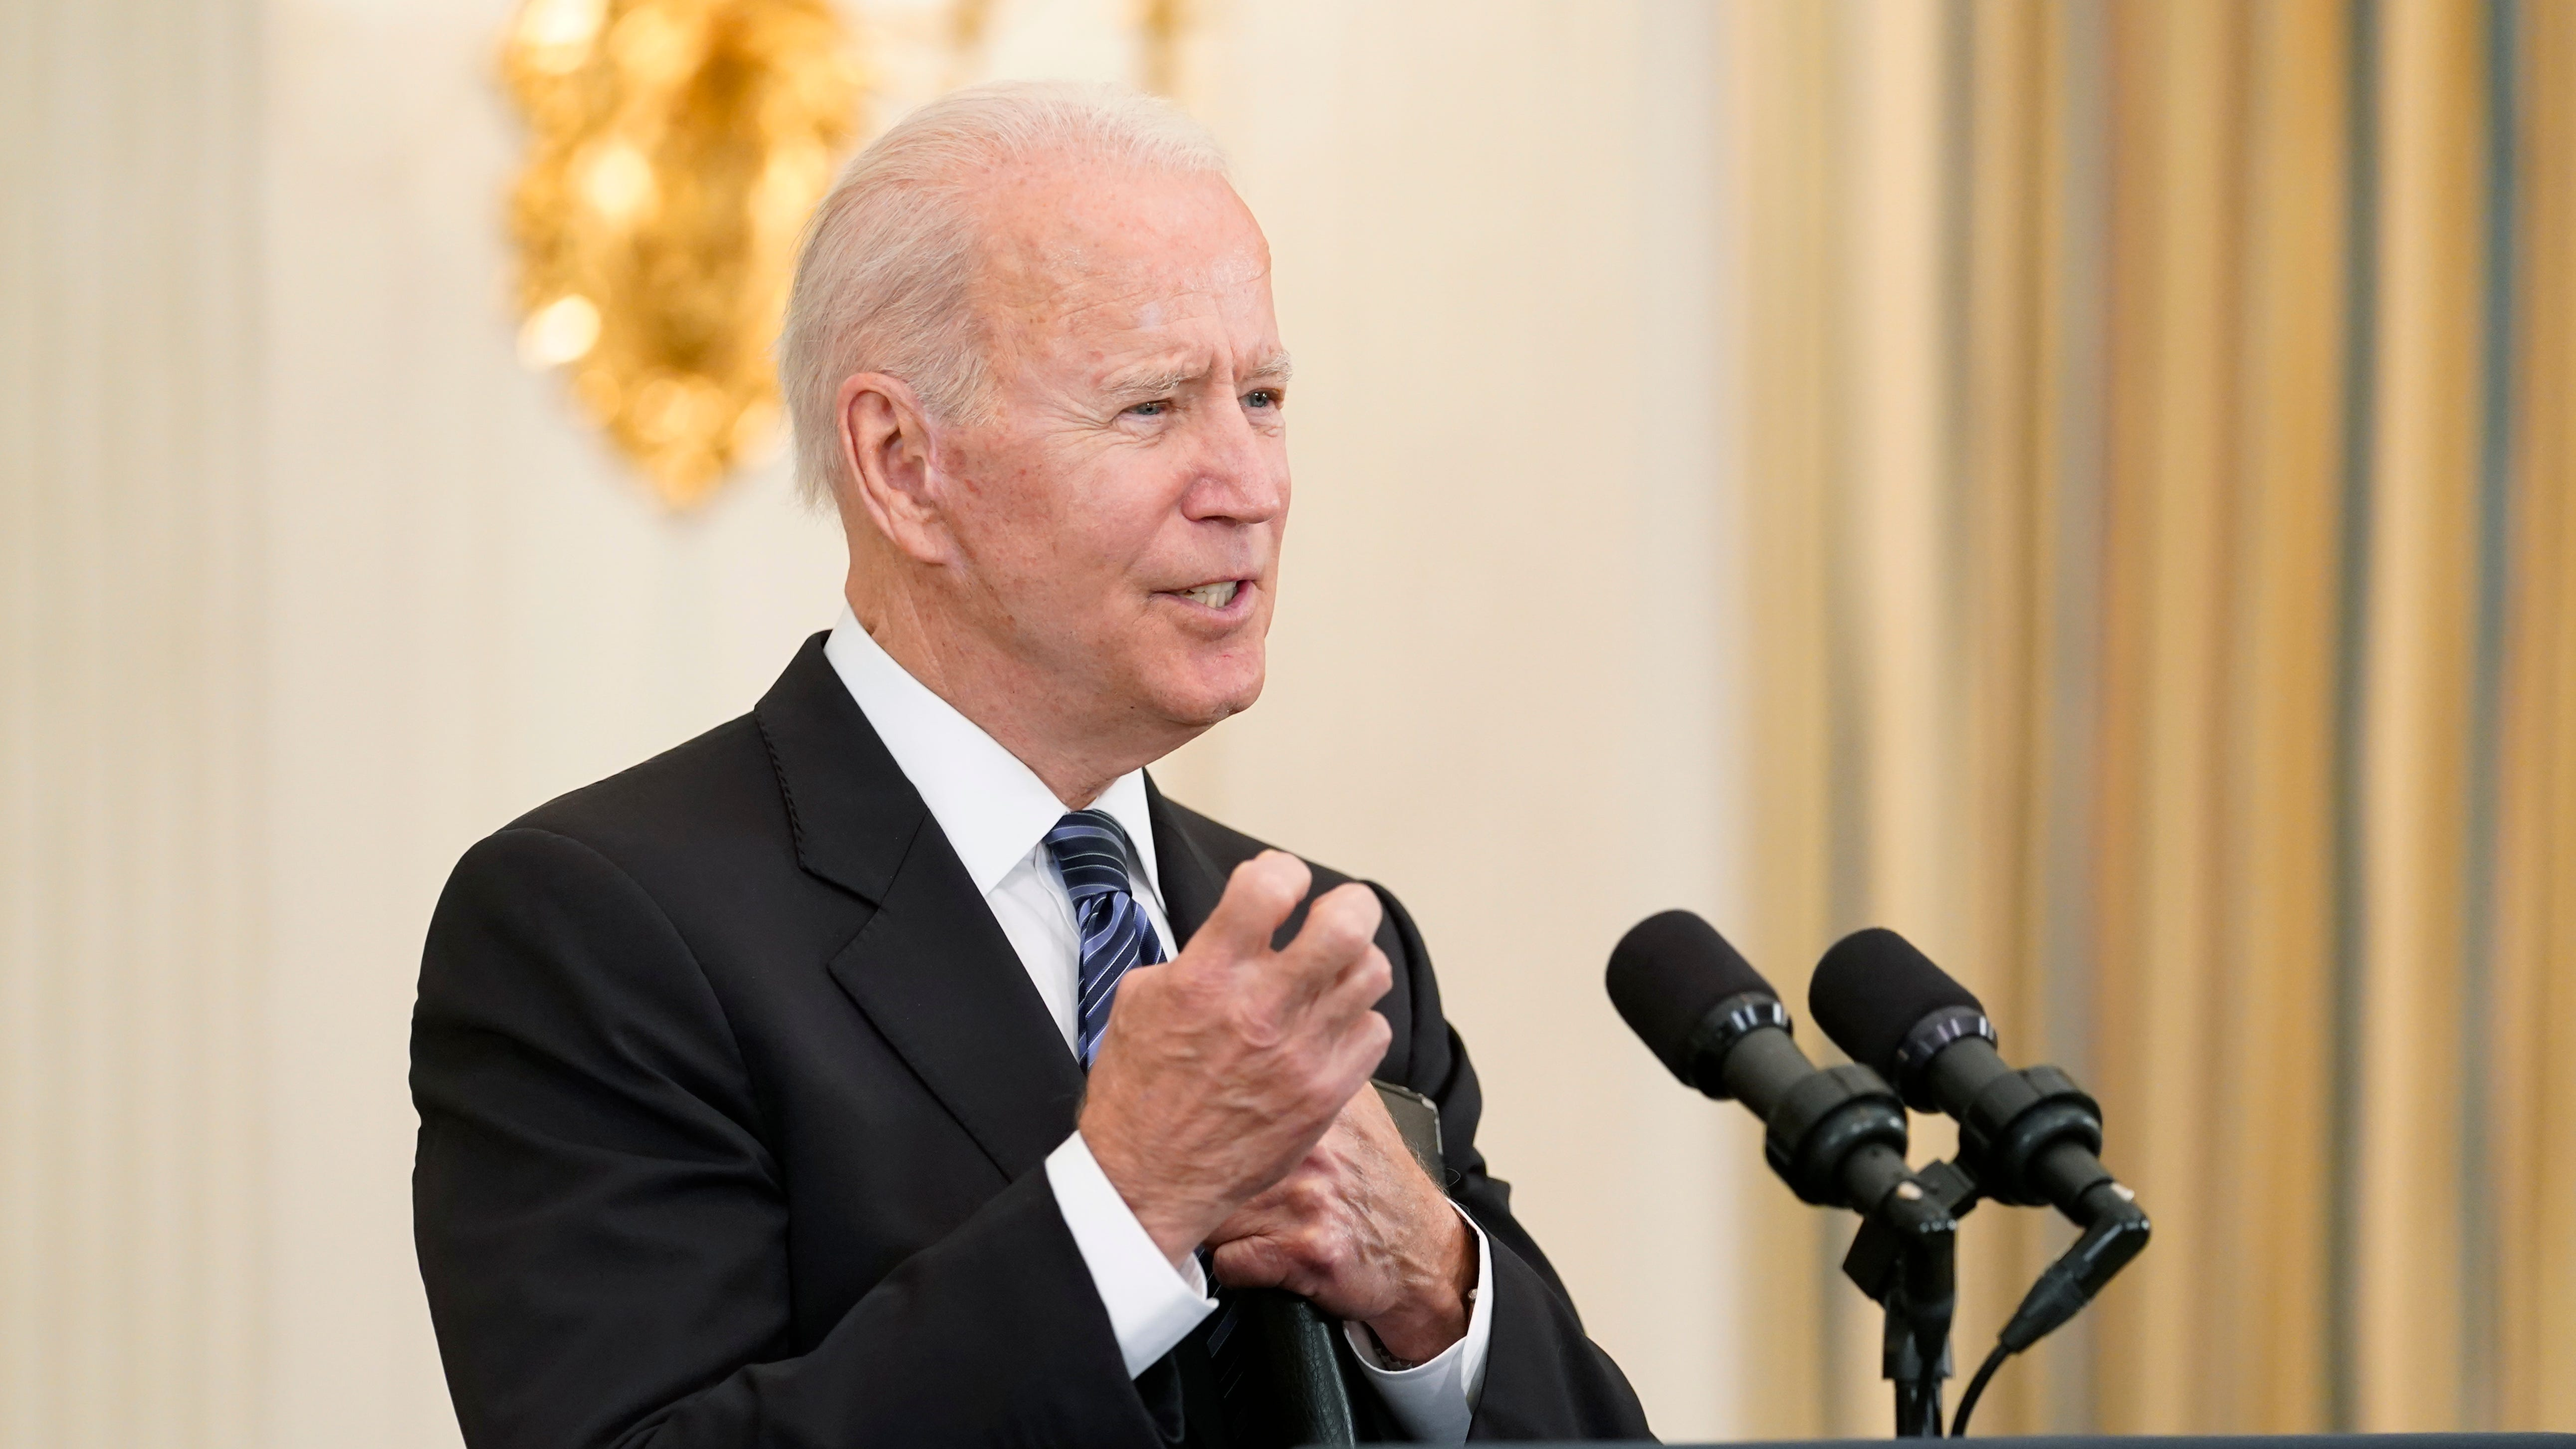 Bipartisan group of 21 senators reached infrastructure deal with Biden